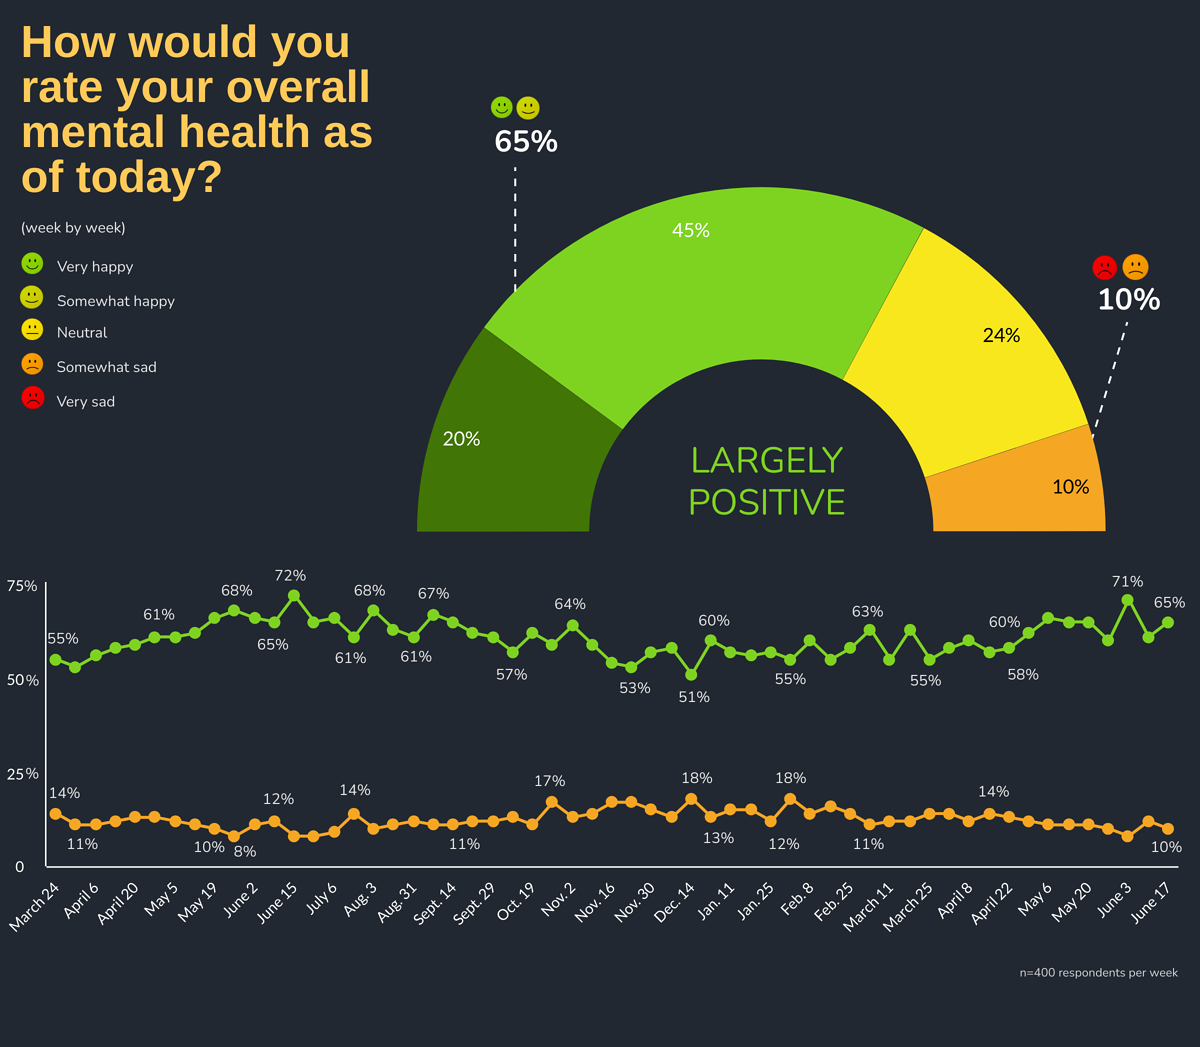 How would you rate your overall mental health as of today? by Week: Week